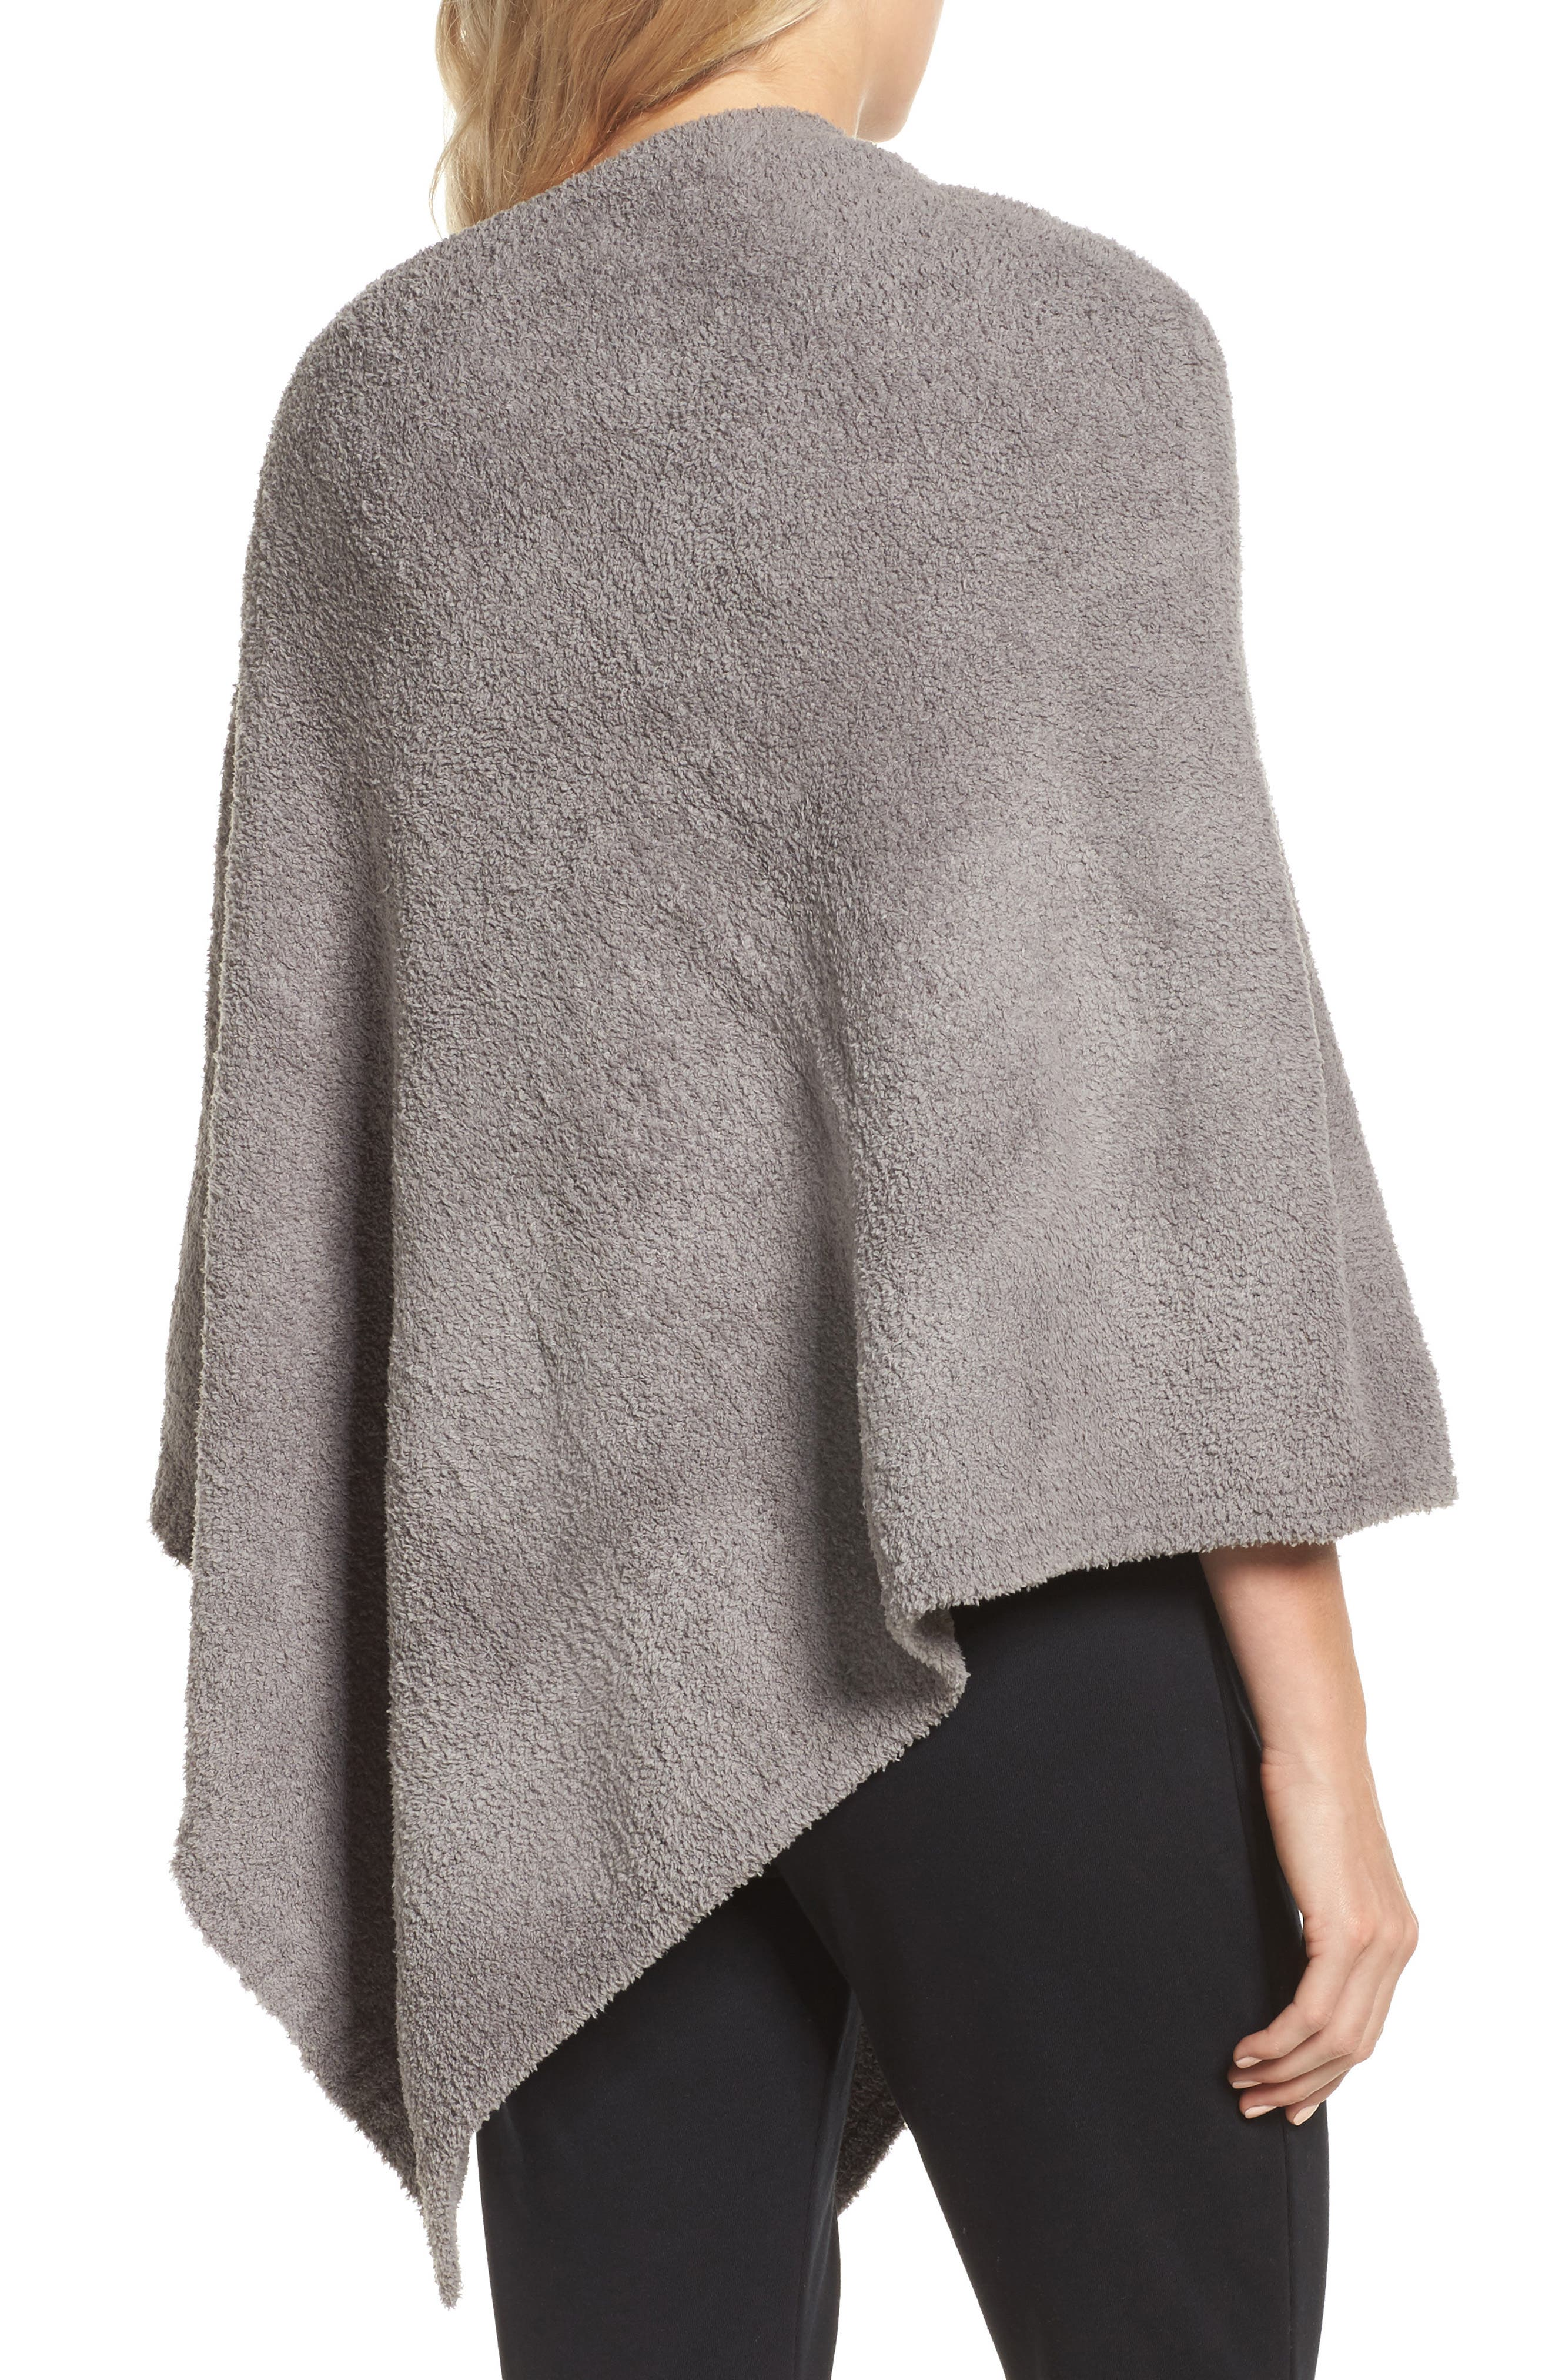 Boatneck CozyChic<sup>®</sup> Poncho,                             Alternate thumbnail 2, color,                             Warm Grey